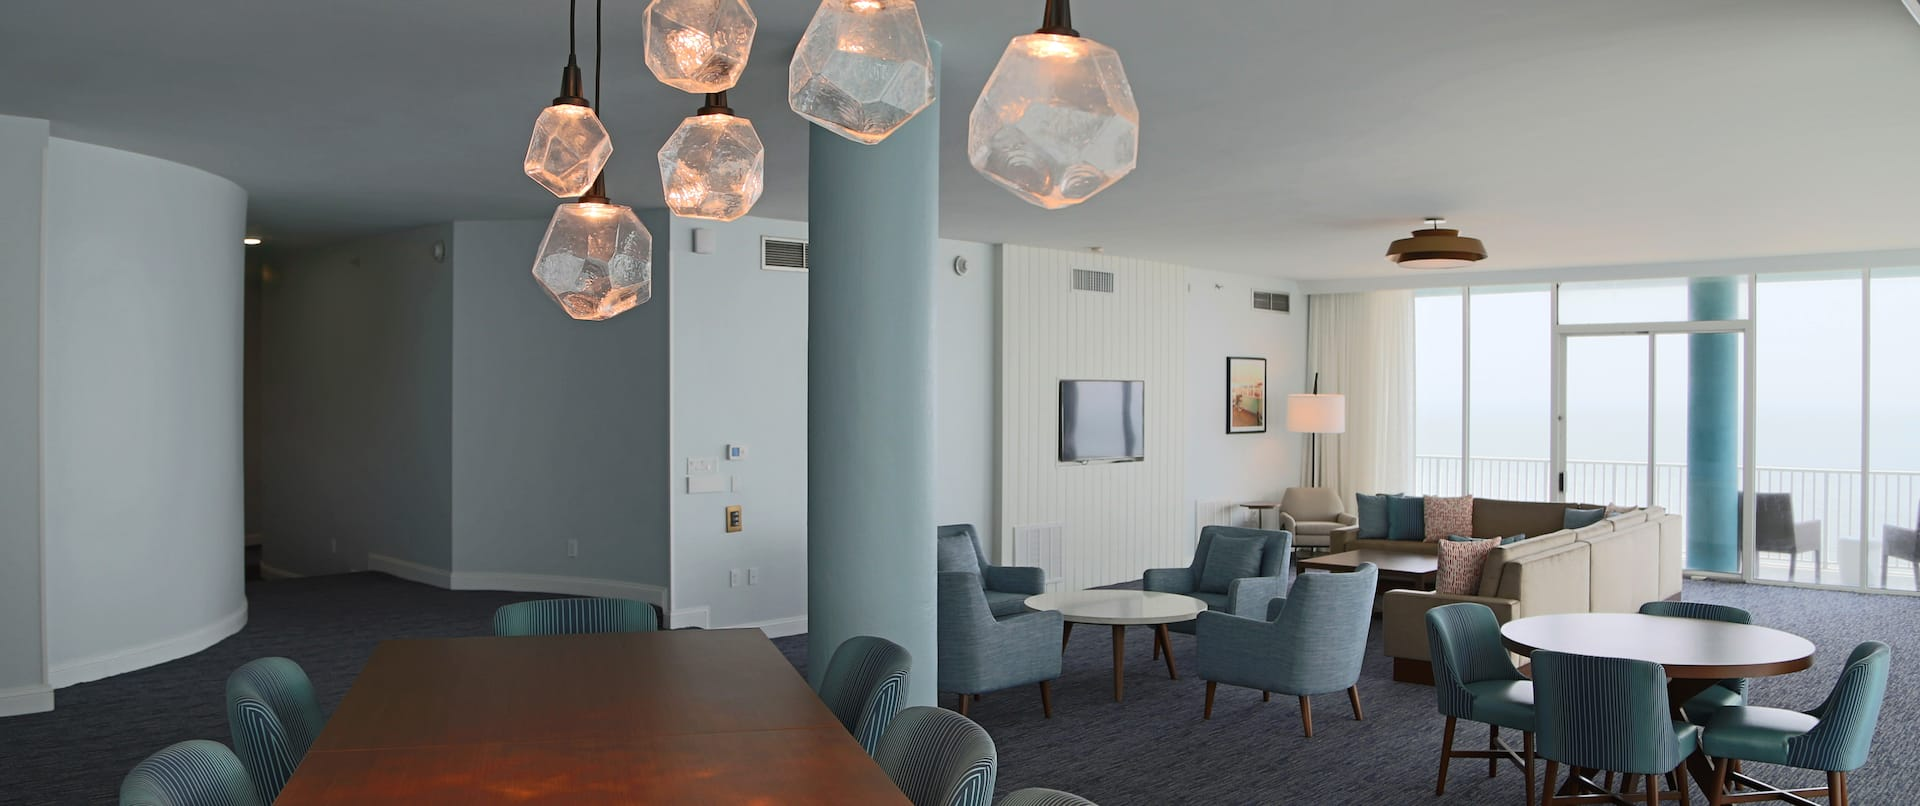 Penthouse Meeting Area and Lounge Seating